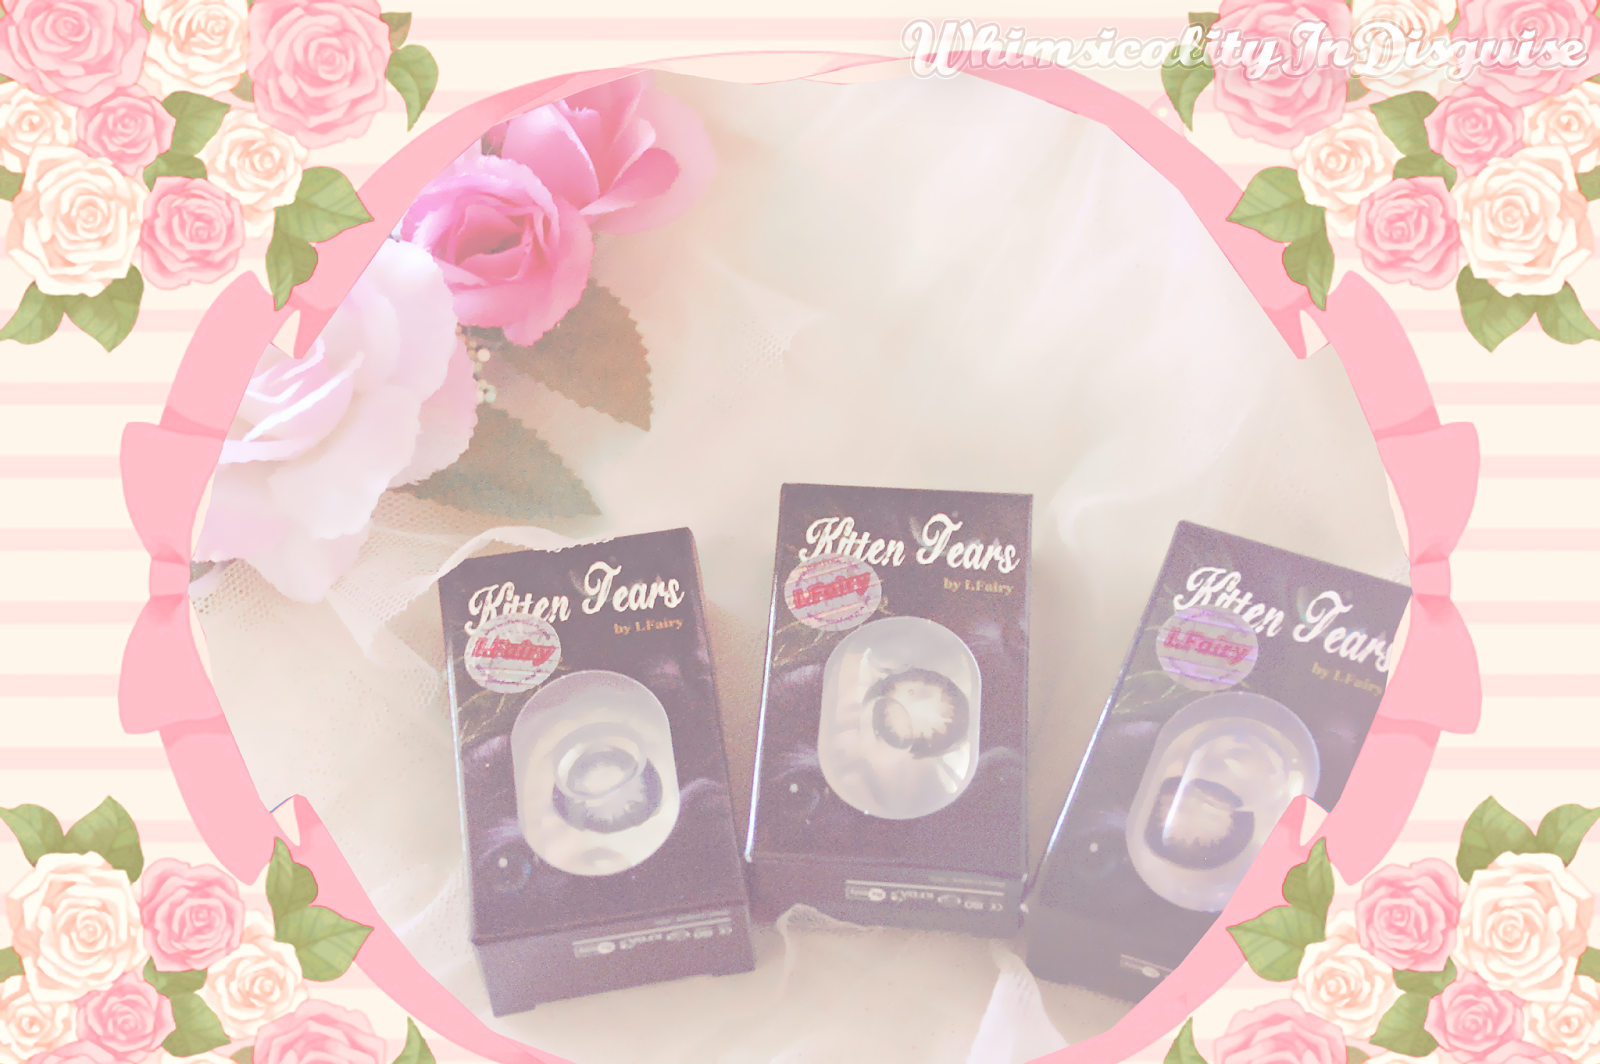 I.Fairy Kitten Tears circle lens